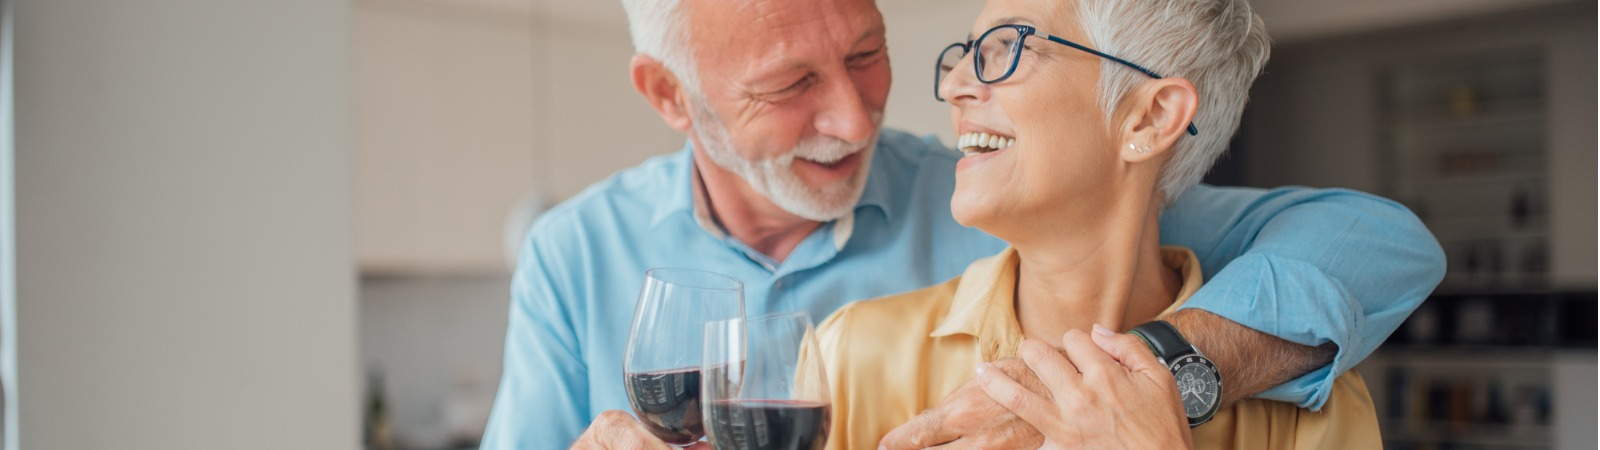 smiling-man-and-woman-holding-glasses-of-red-wine